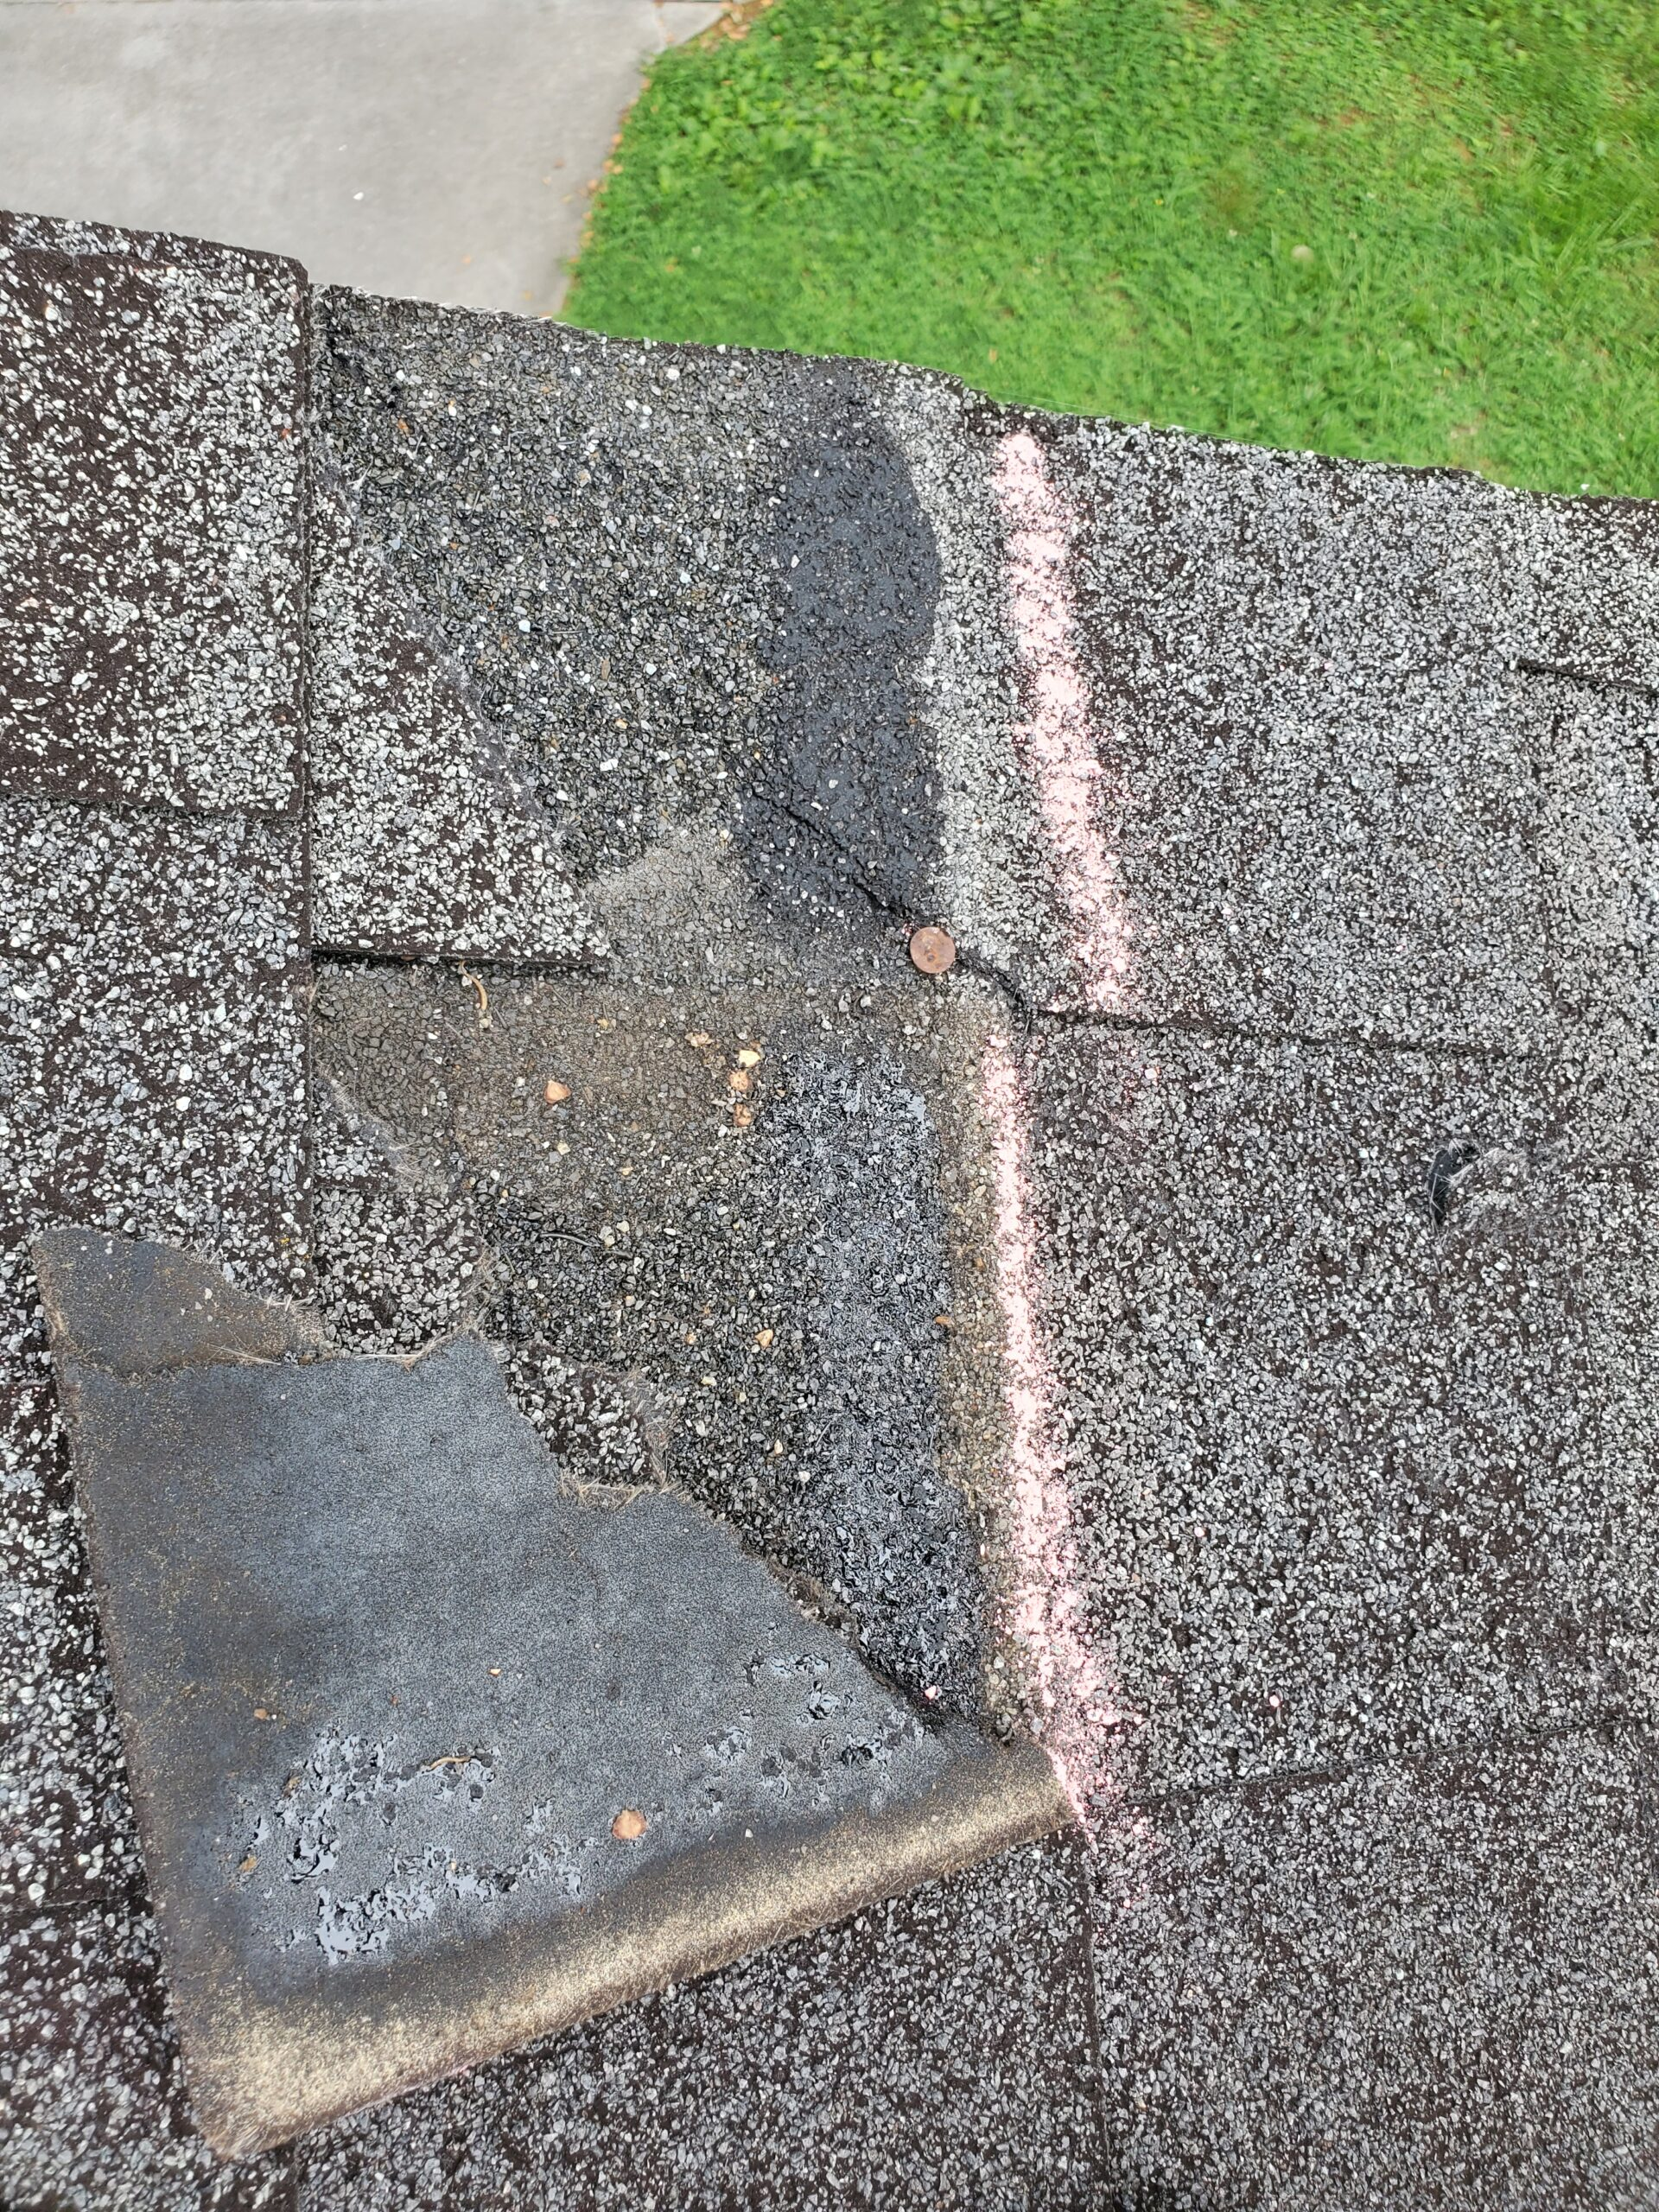 this is a picture of a shingle that has been blown off the roof